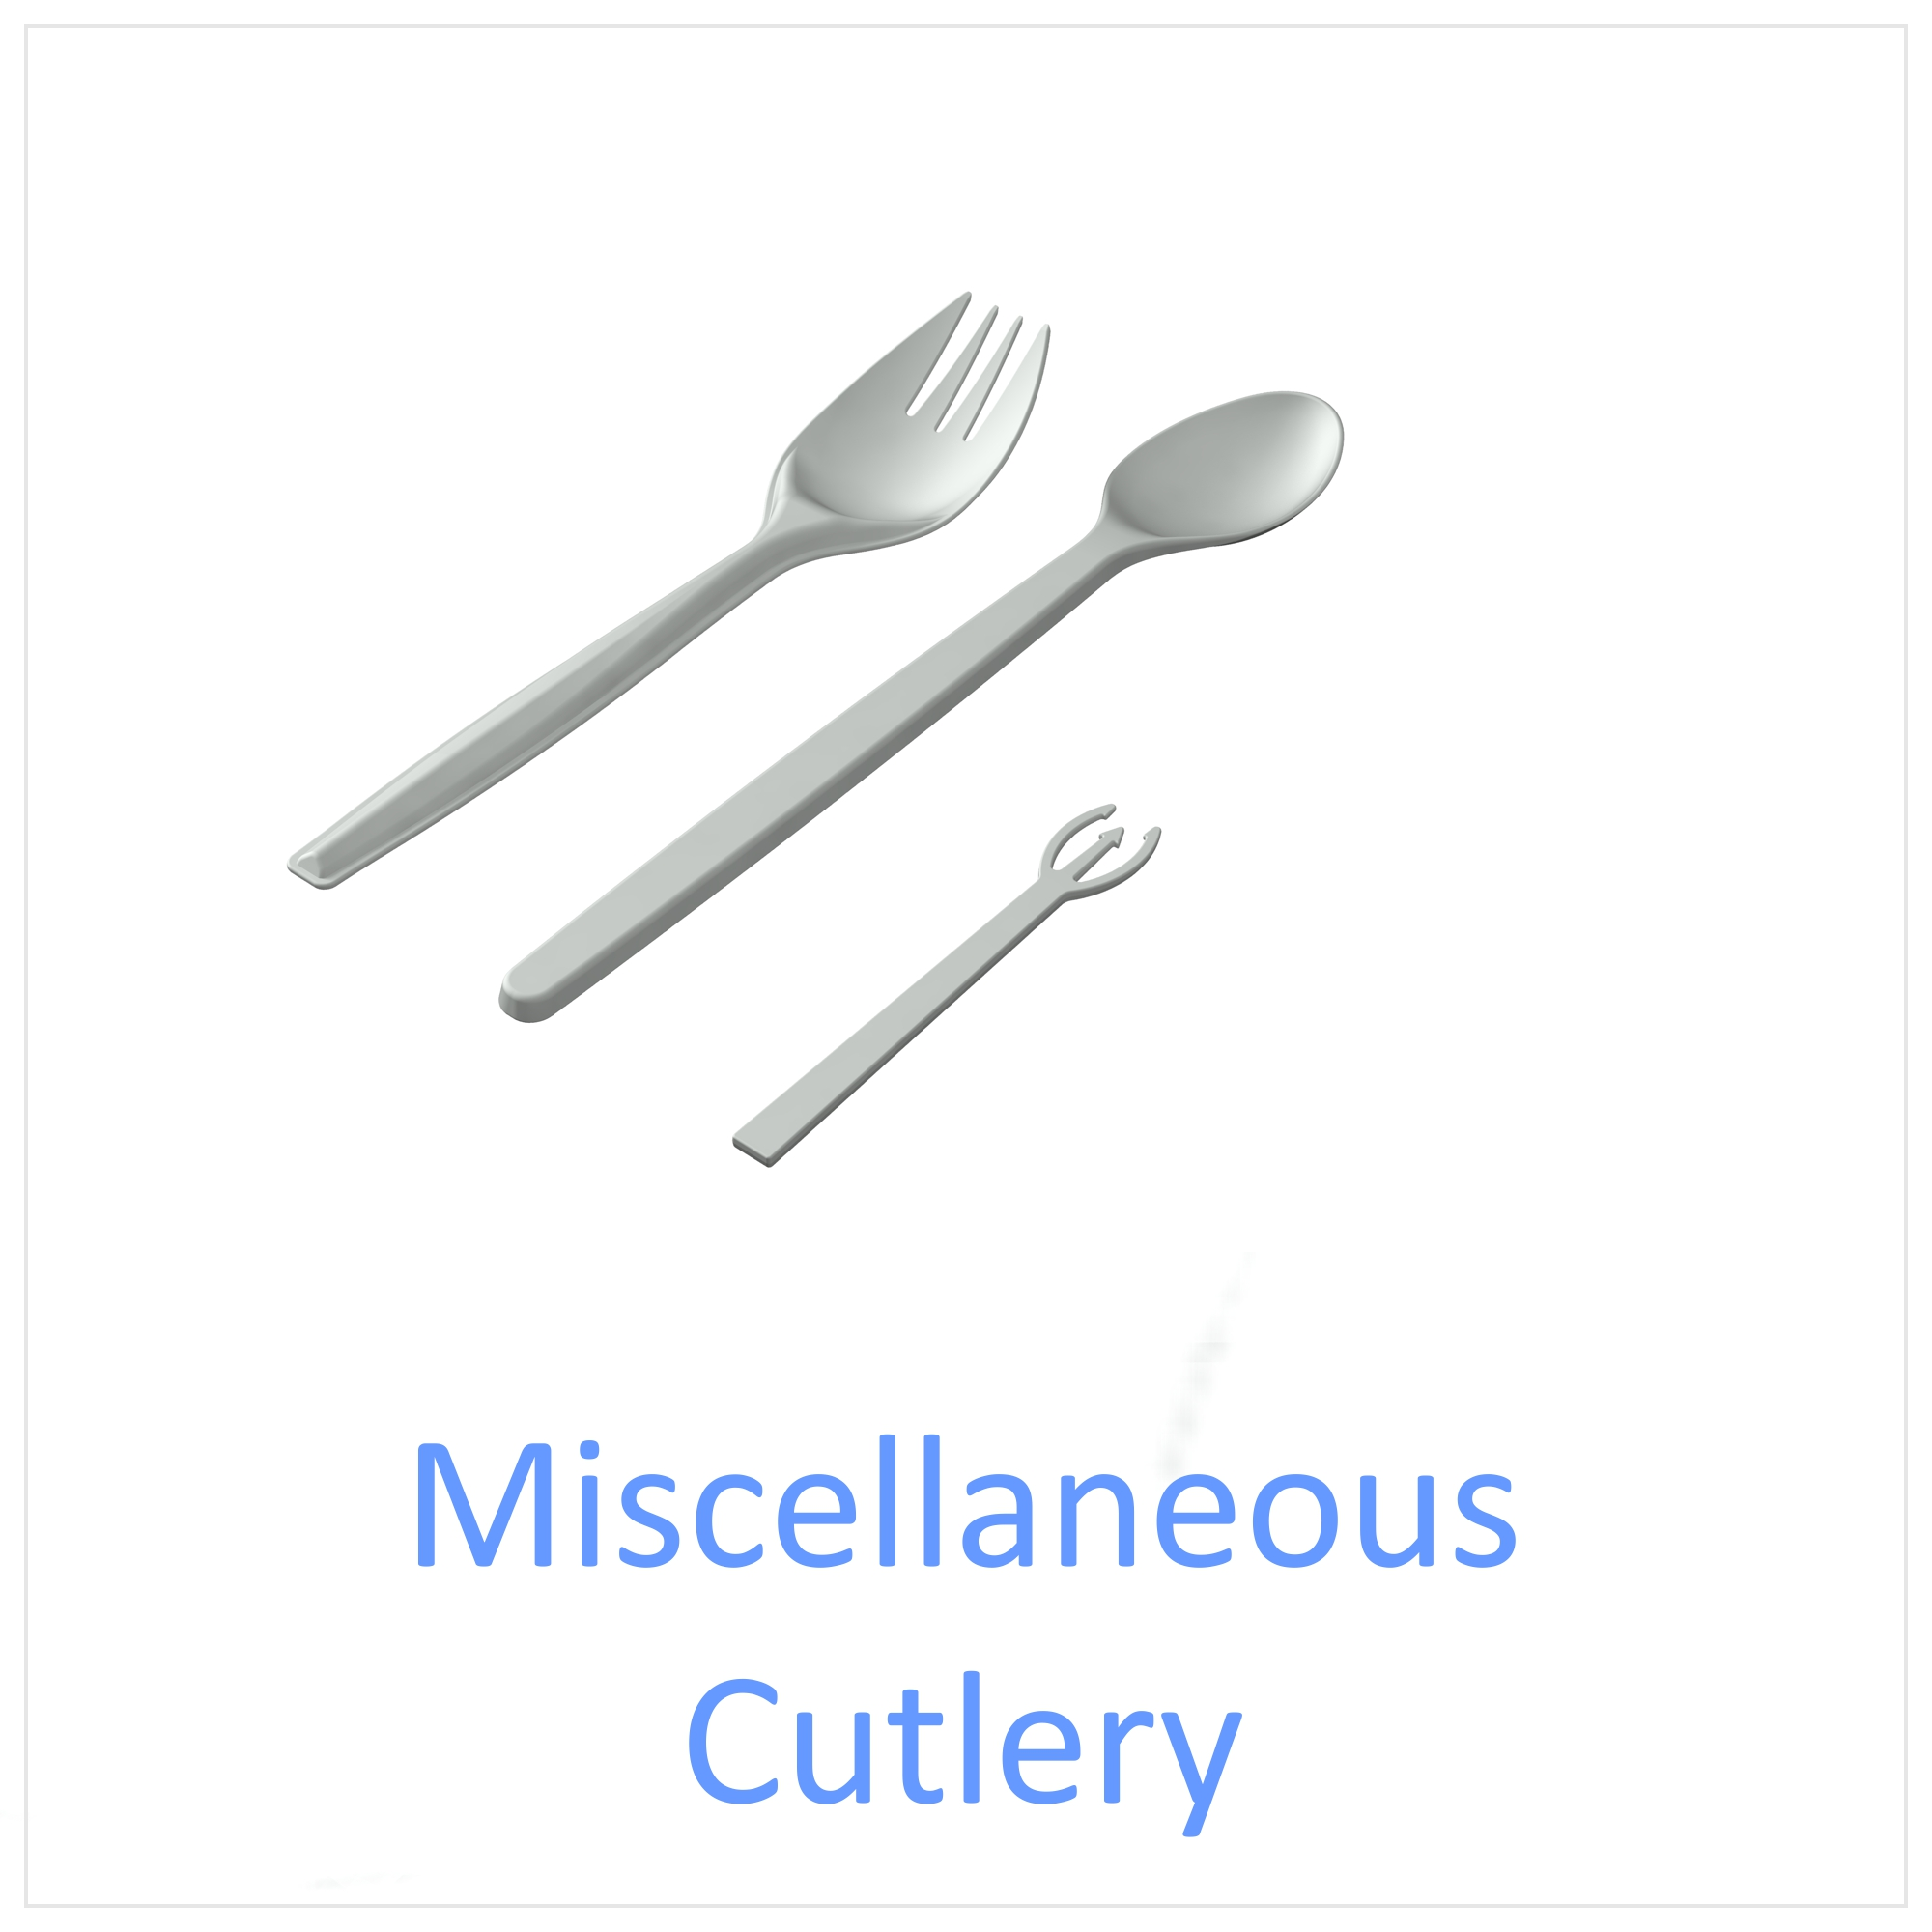 Miscellaneous Cutlery